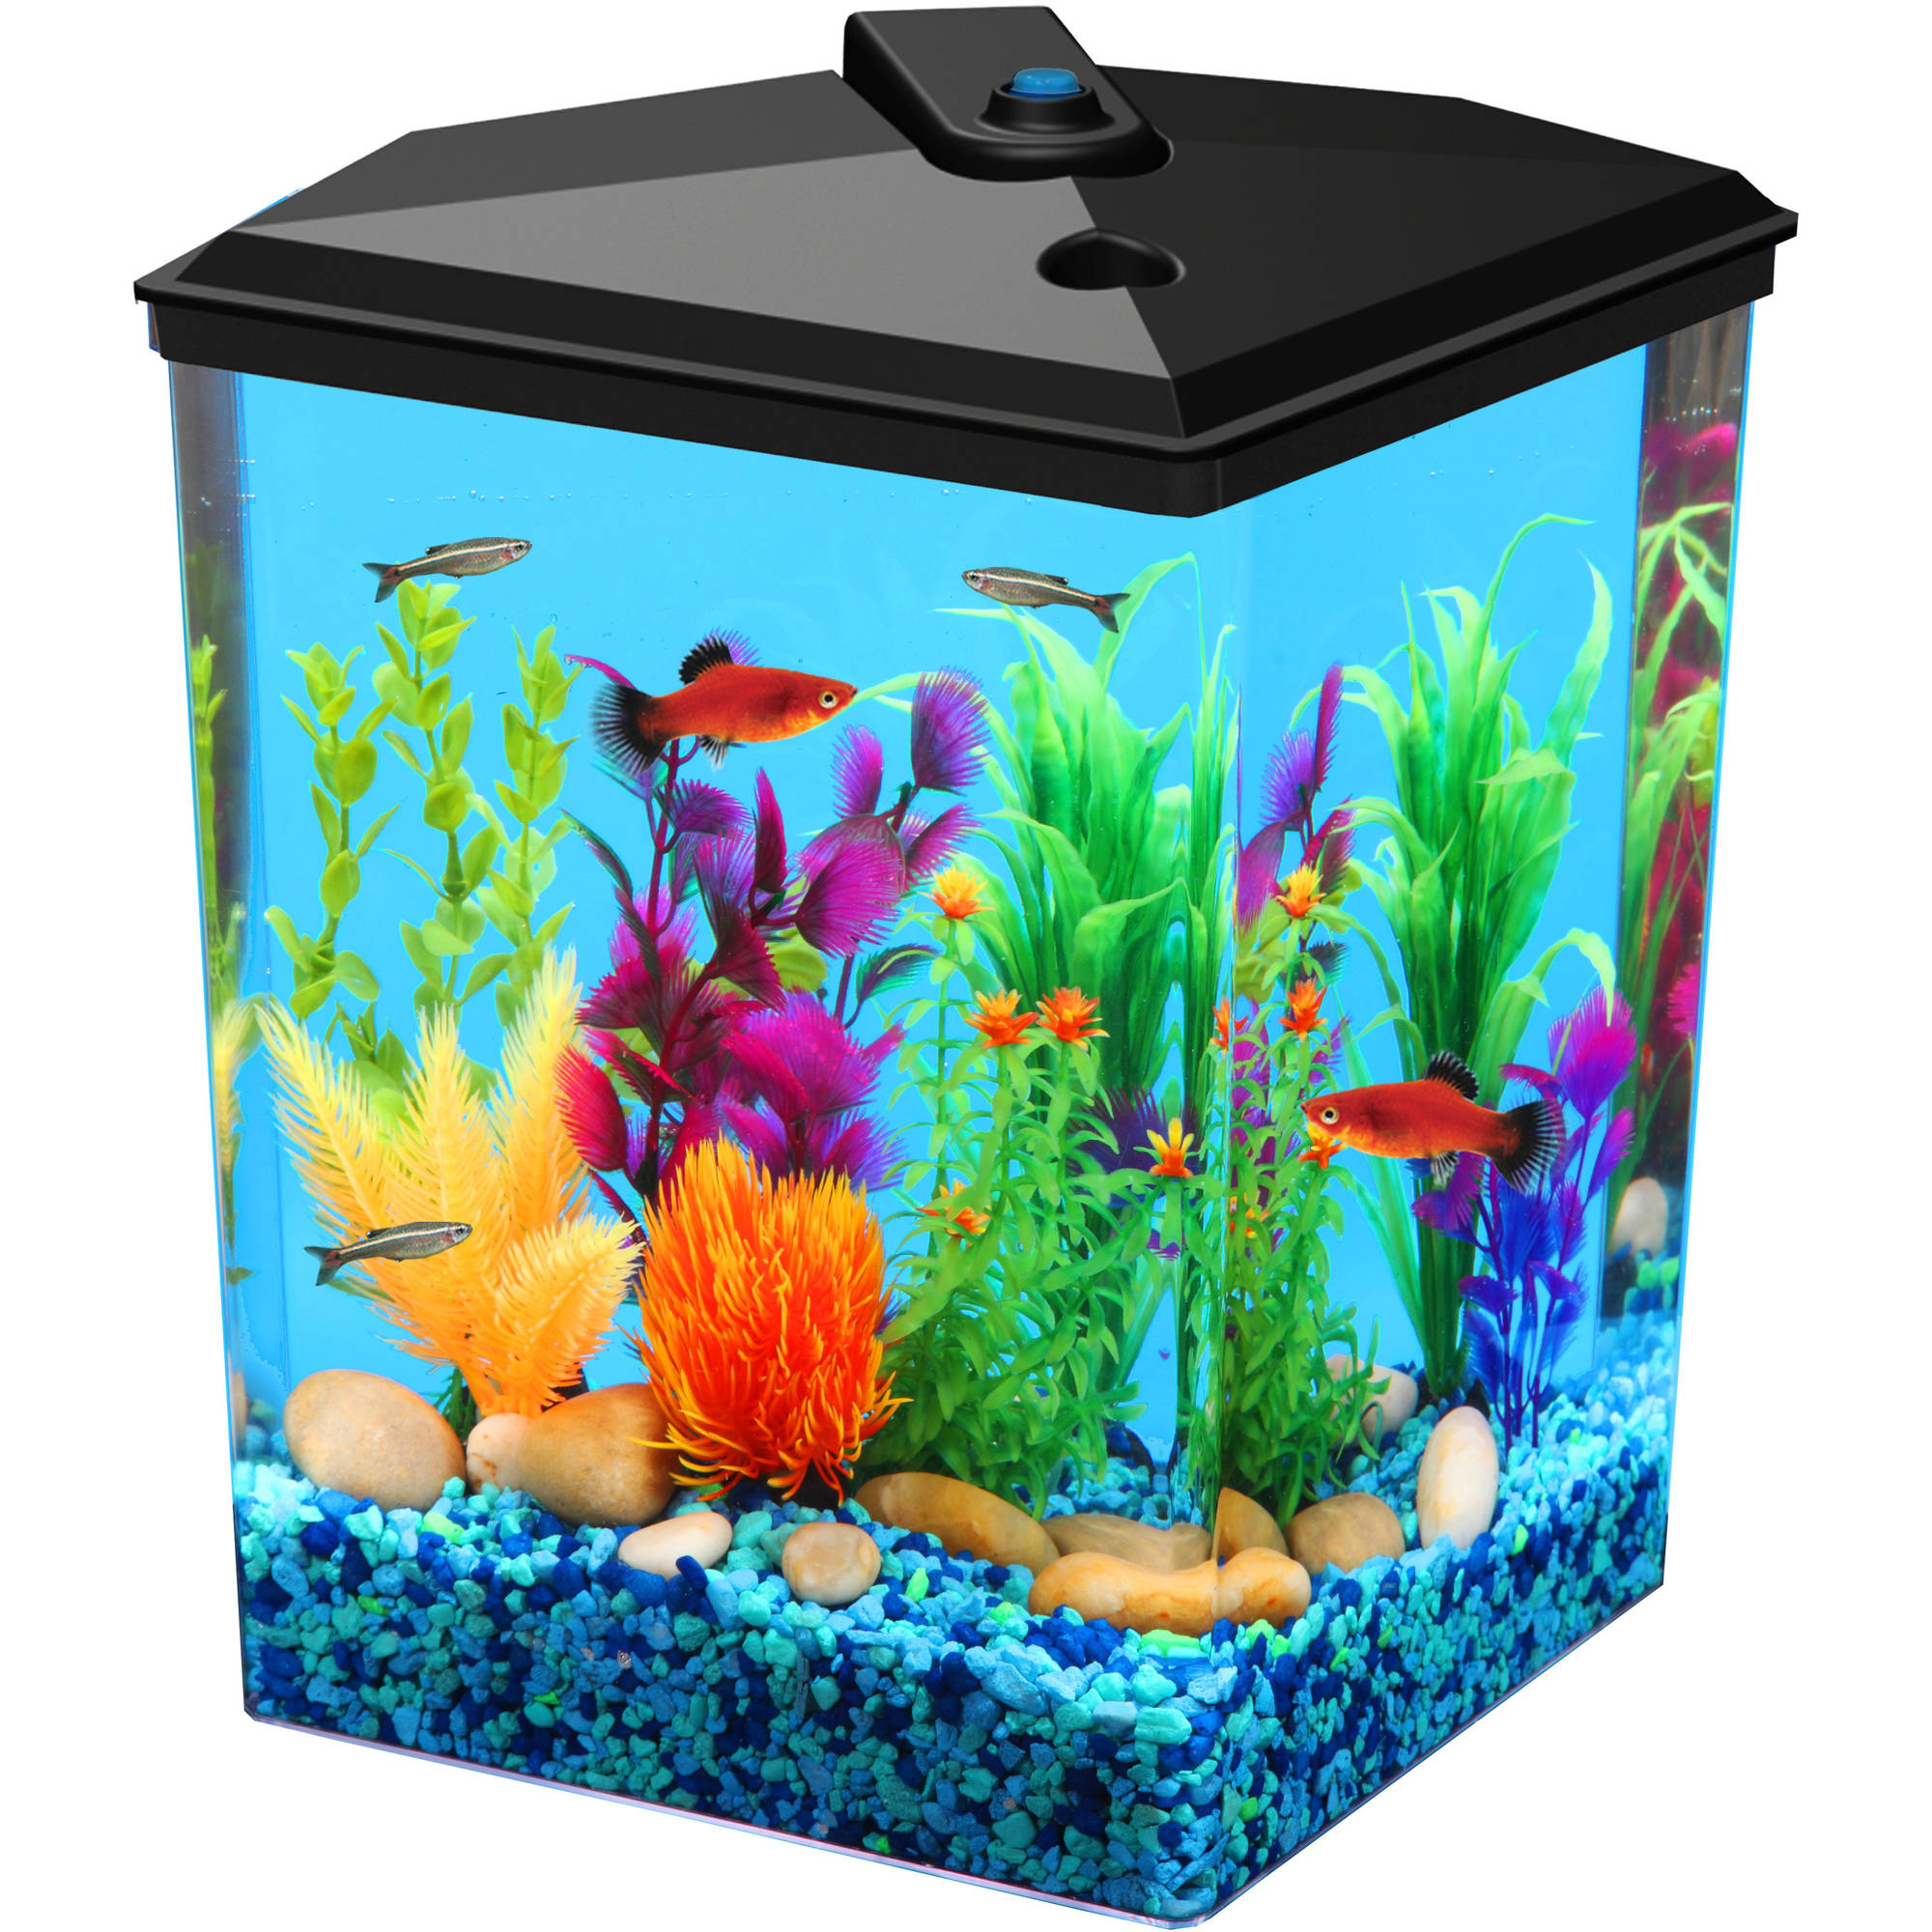 Fish tank electricity cost - Self Cleaning Fun Fish Tank Small Aquarium Desktop Bowl As Seen On Tv Walmart Com